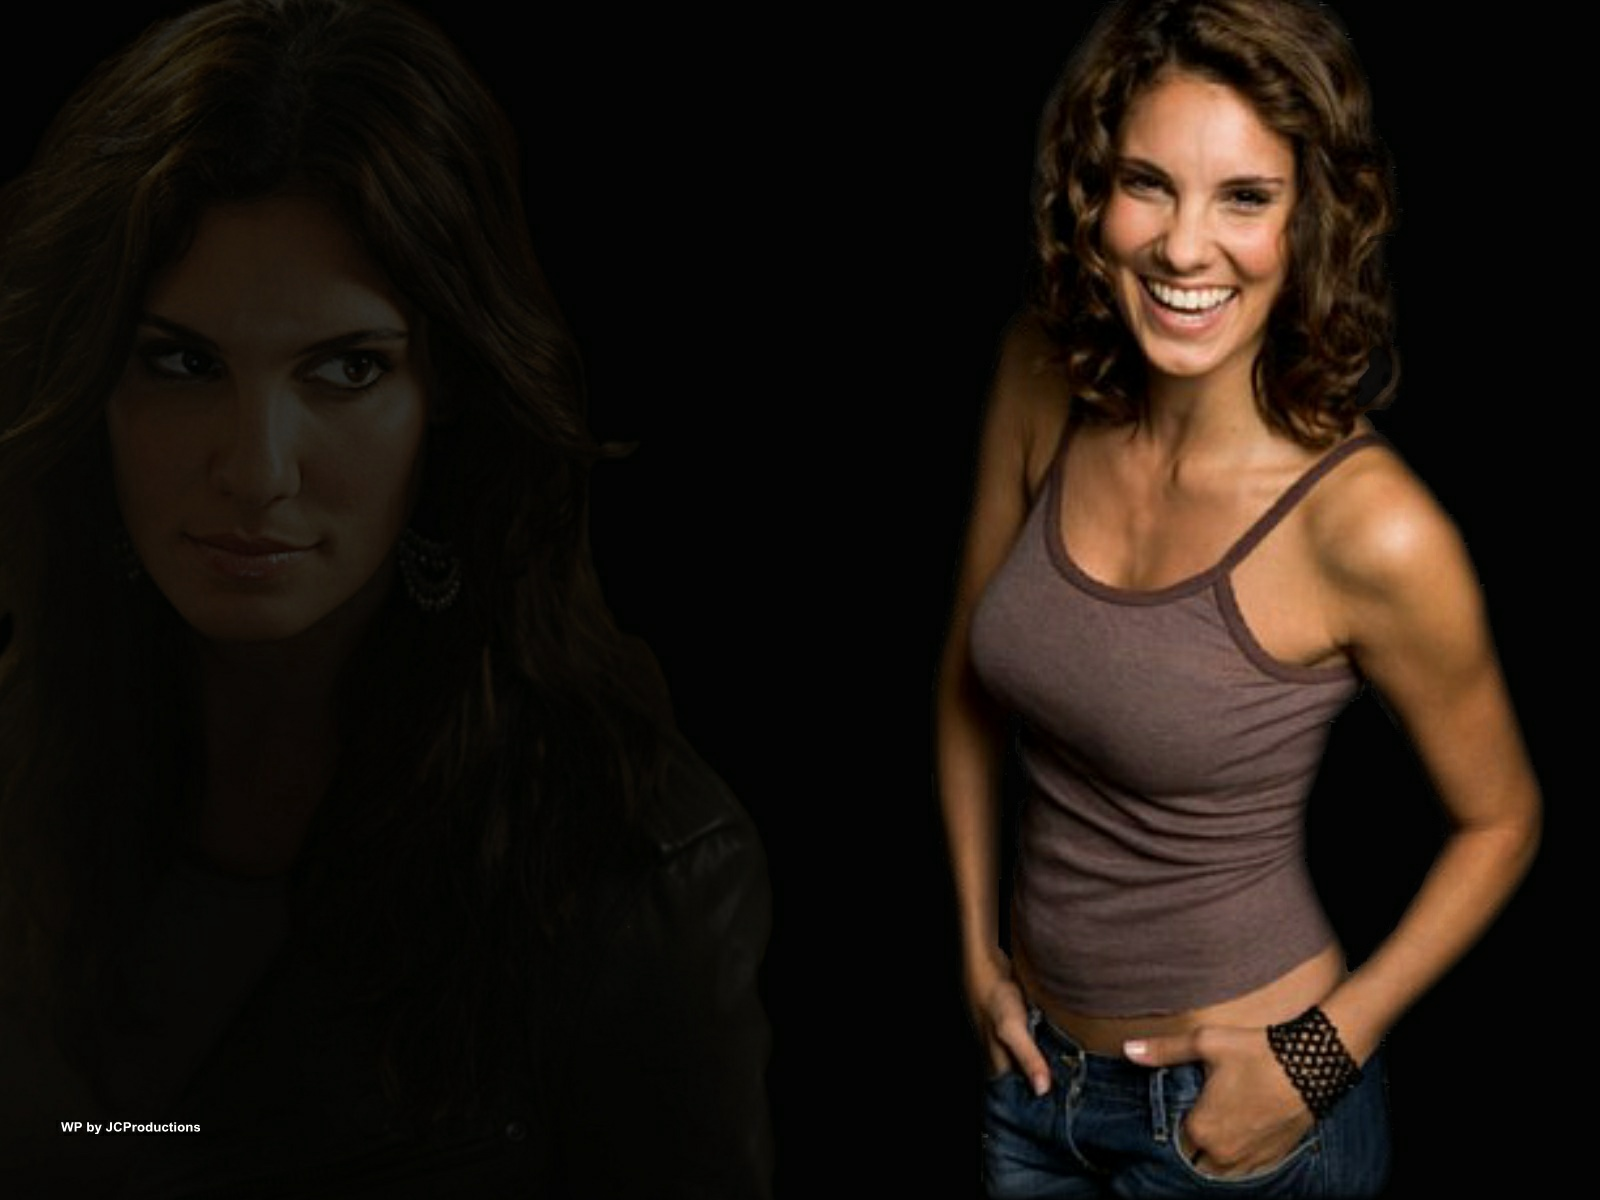 Download HQ actress, daniela ruah, ncis la, spies, spy, kenzie, daniela, hot babe NCIS Los Angeles wallpaper / 1600x1200